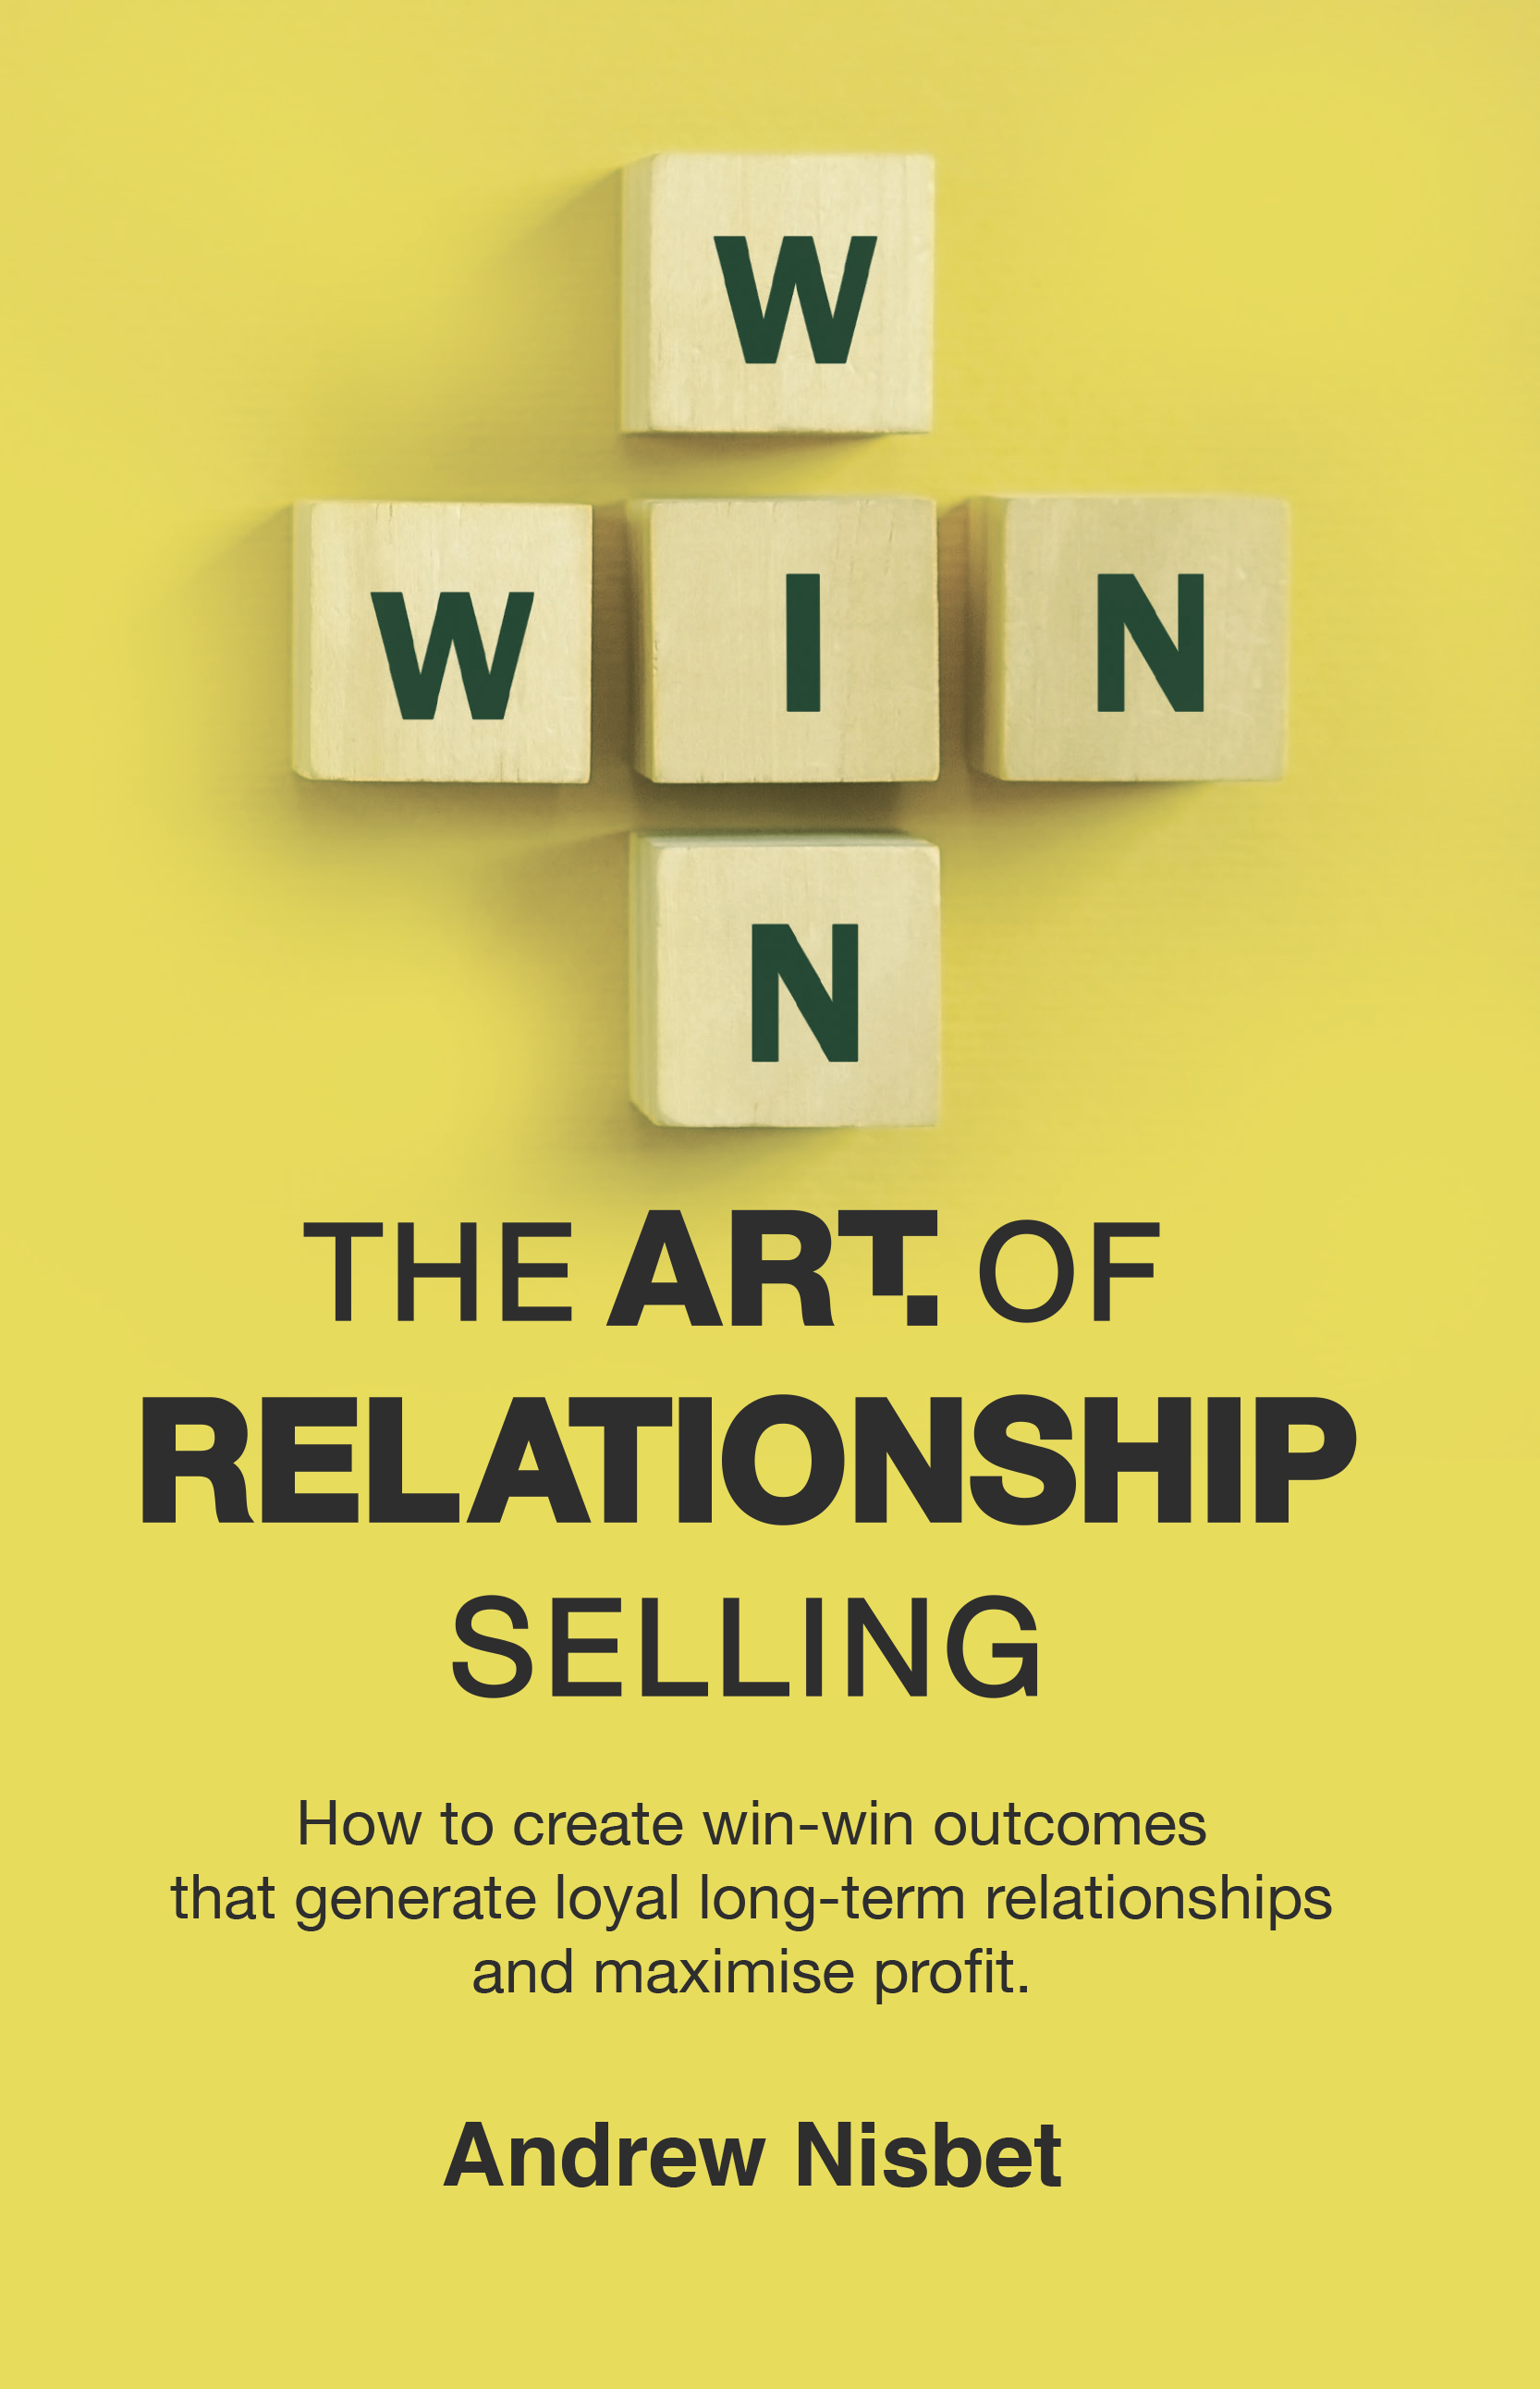 The Art of Relationship Selling